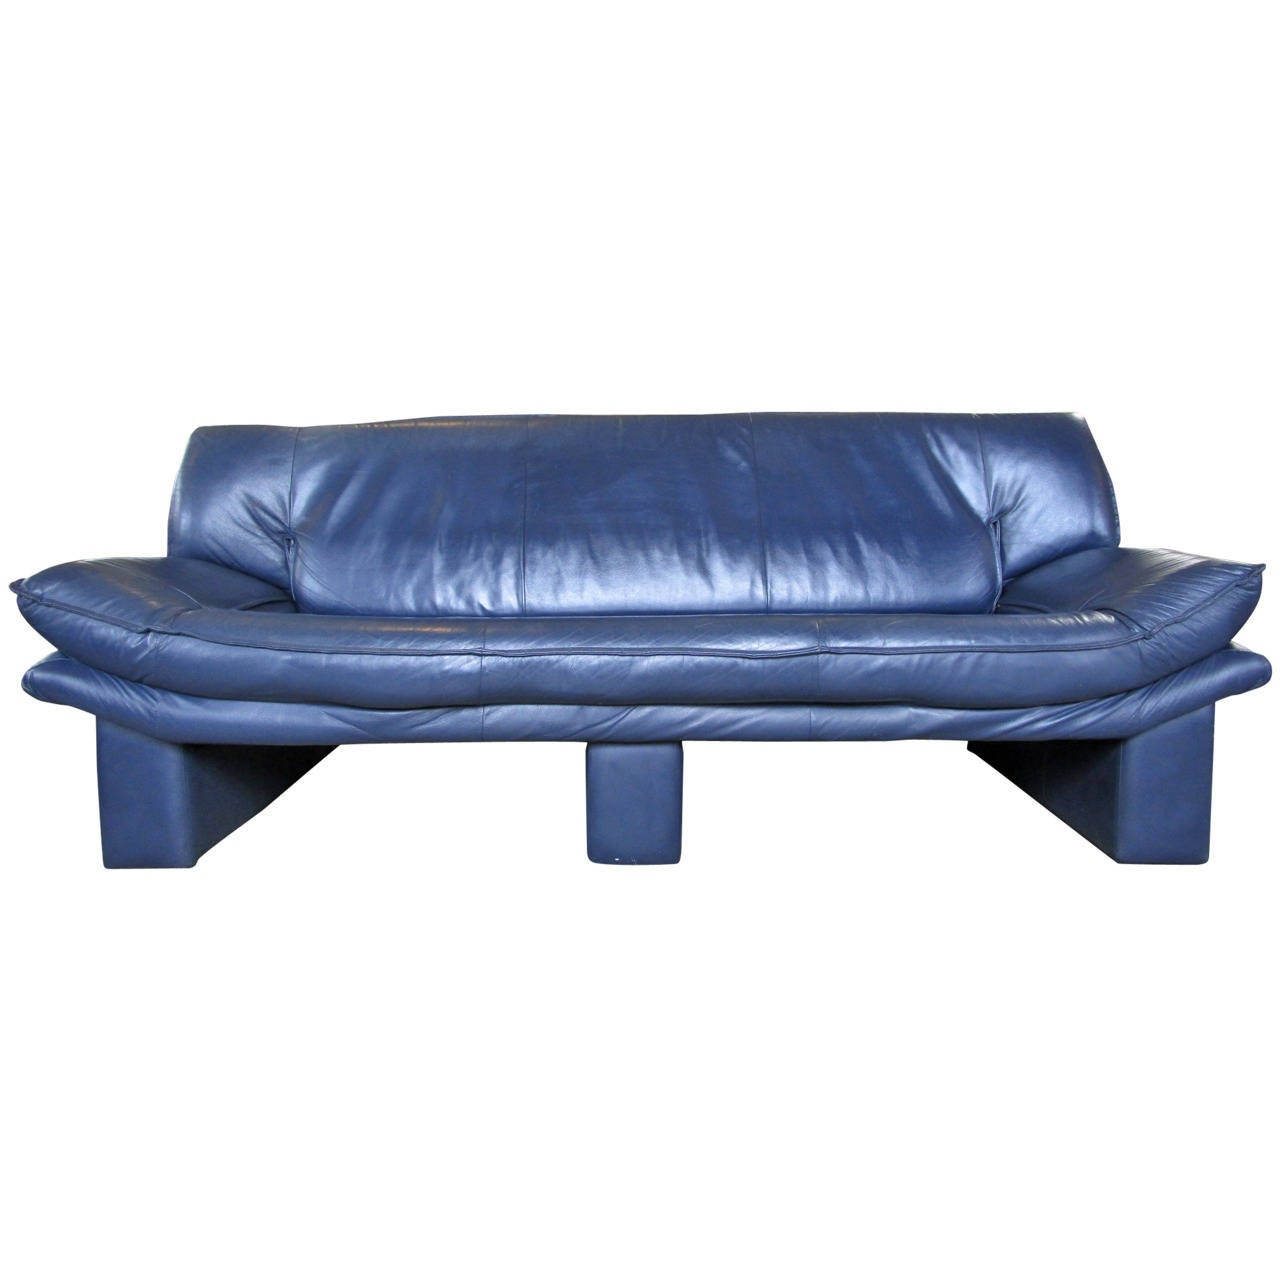 navy blue leather sofa by nicoletti salotti at 1stdibs